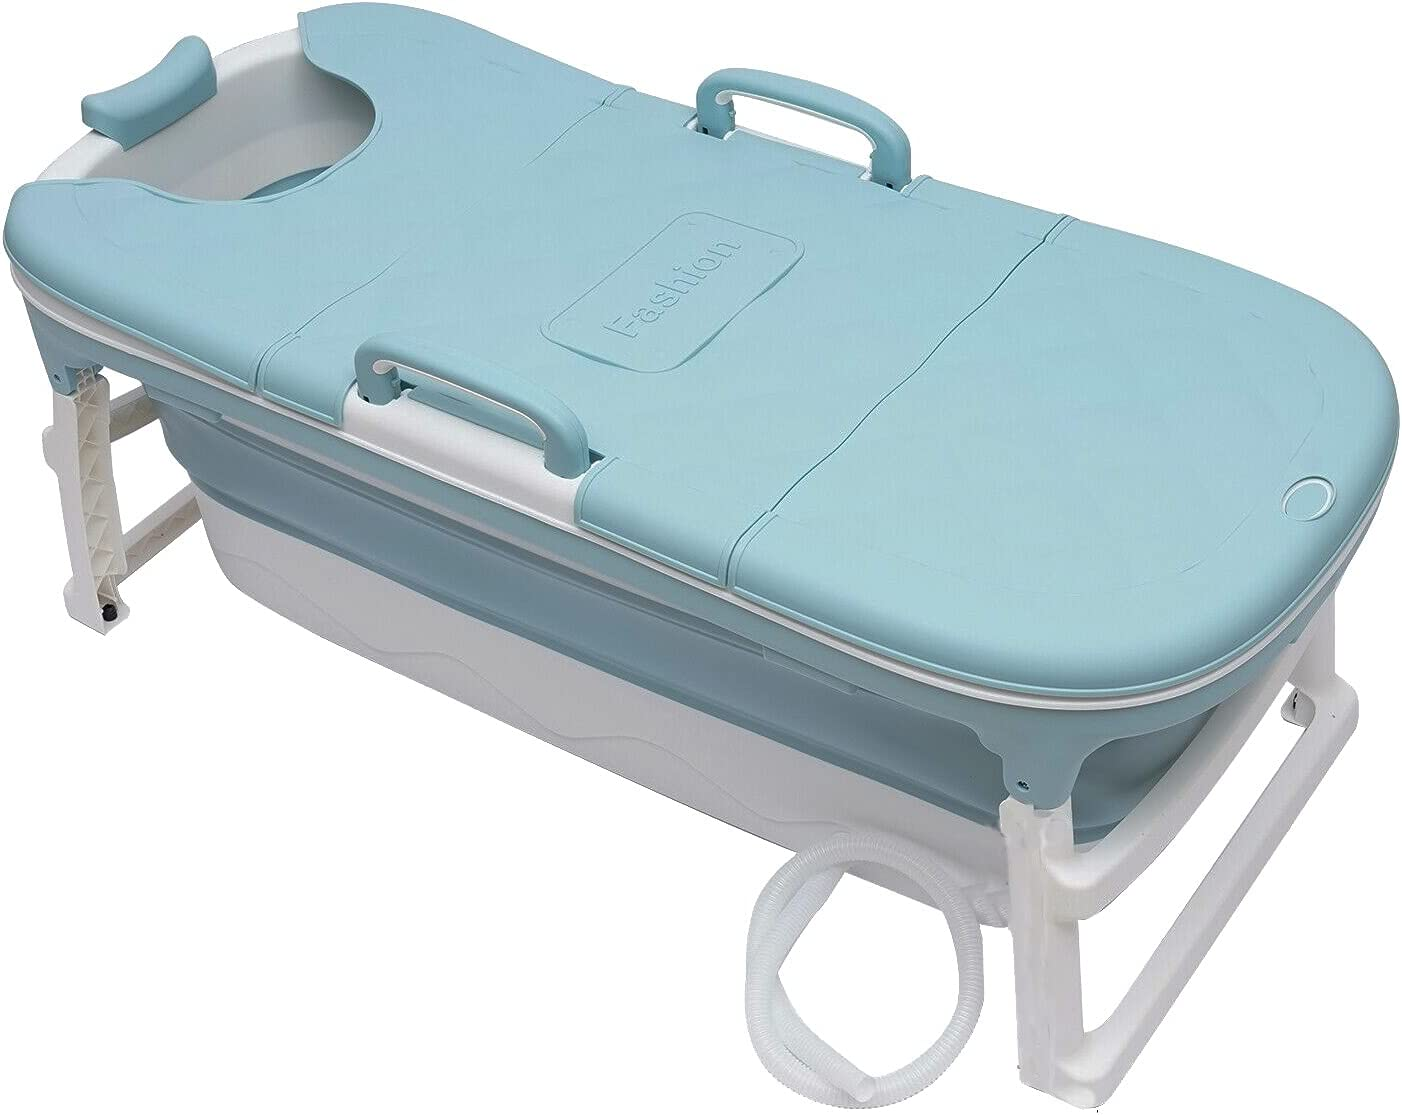 Popular brand in the world Easy Trust Spa Portable Tub Large With Ho Plastic Cover